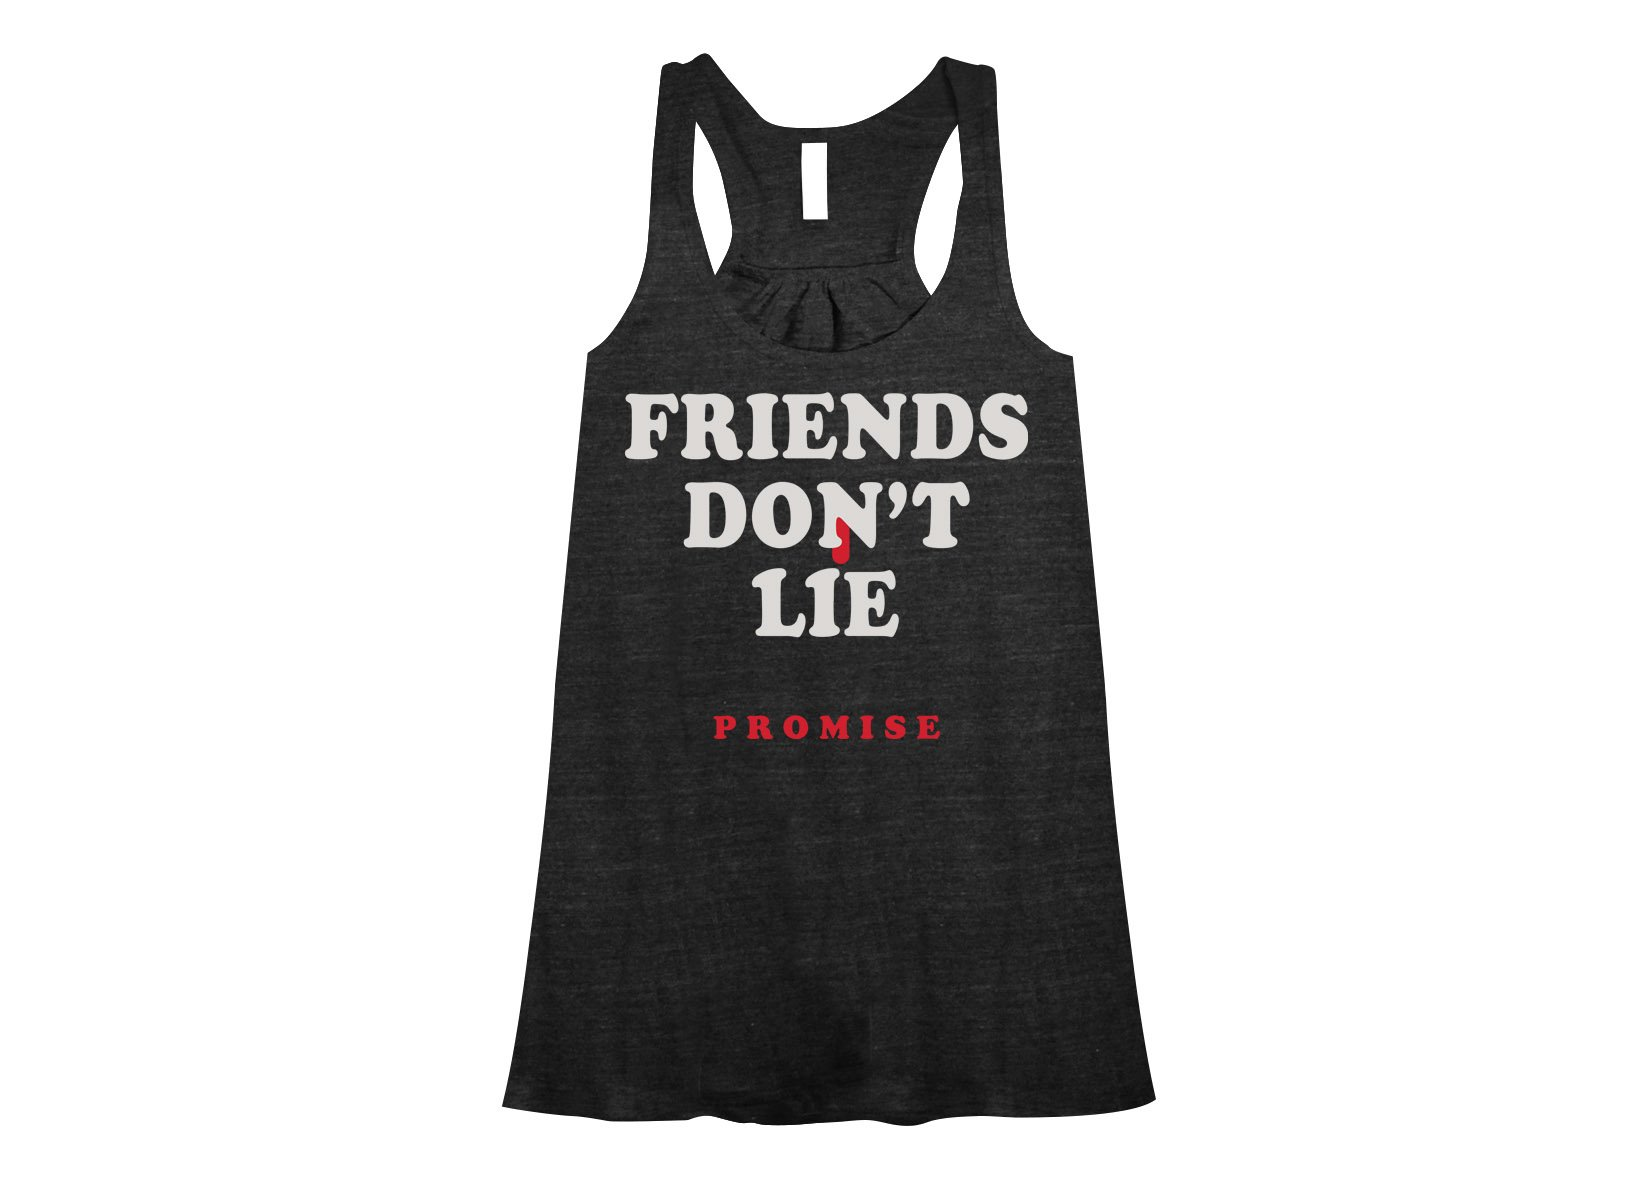 Friends Don't Lie on Womens Tanks T-Shirt